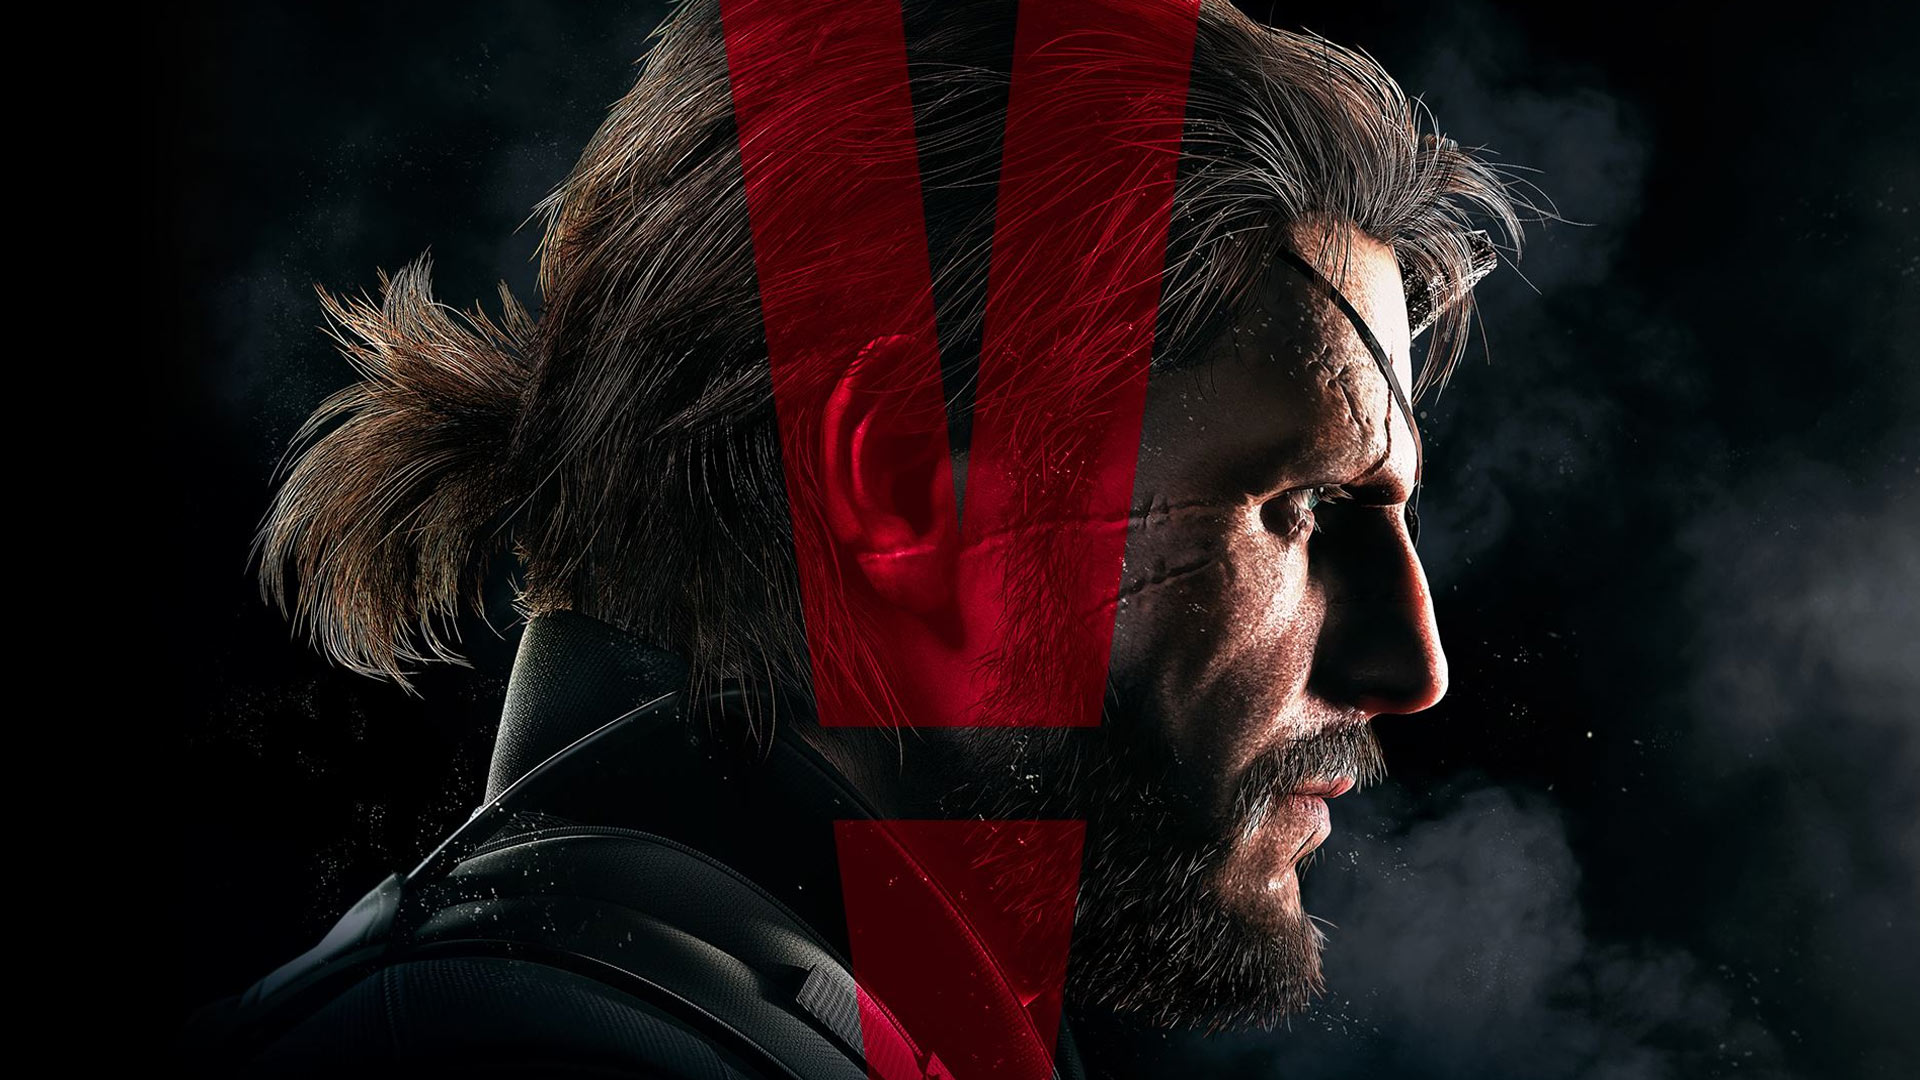 Free Download Metal Gear Solid V The Phantom Pain Hd Wallpaper 4